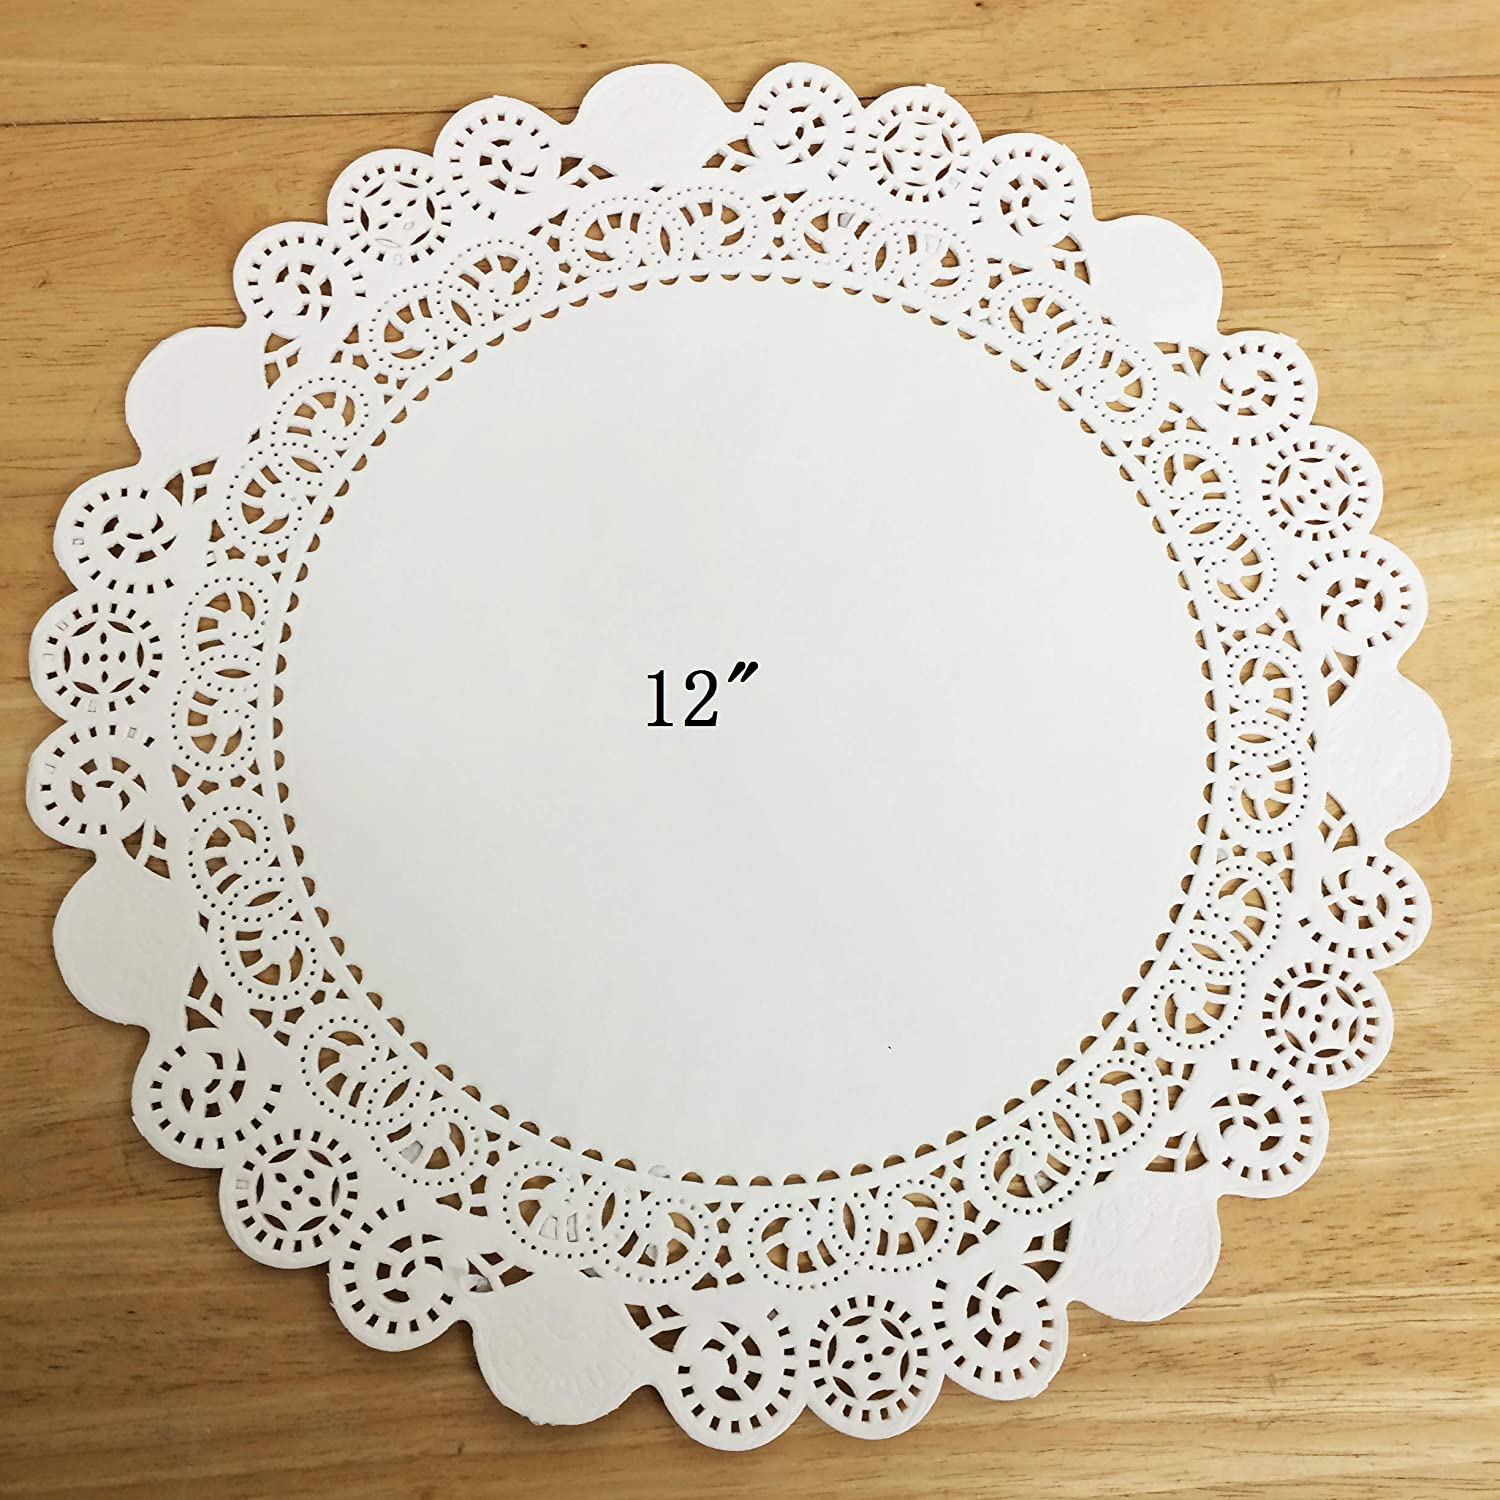 PEPPERLONELY 50 PC Daily bargain sale White Round shop Greaseproof Inch 12 Doilies